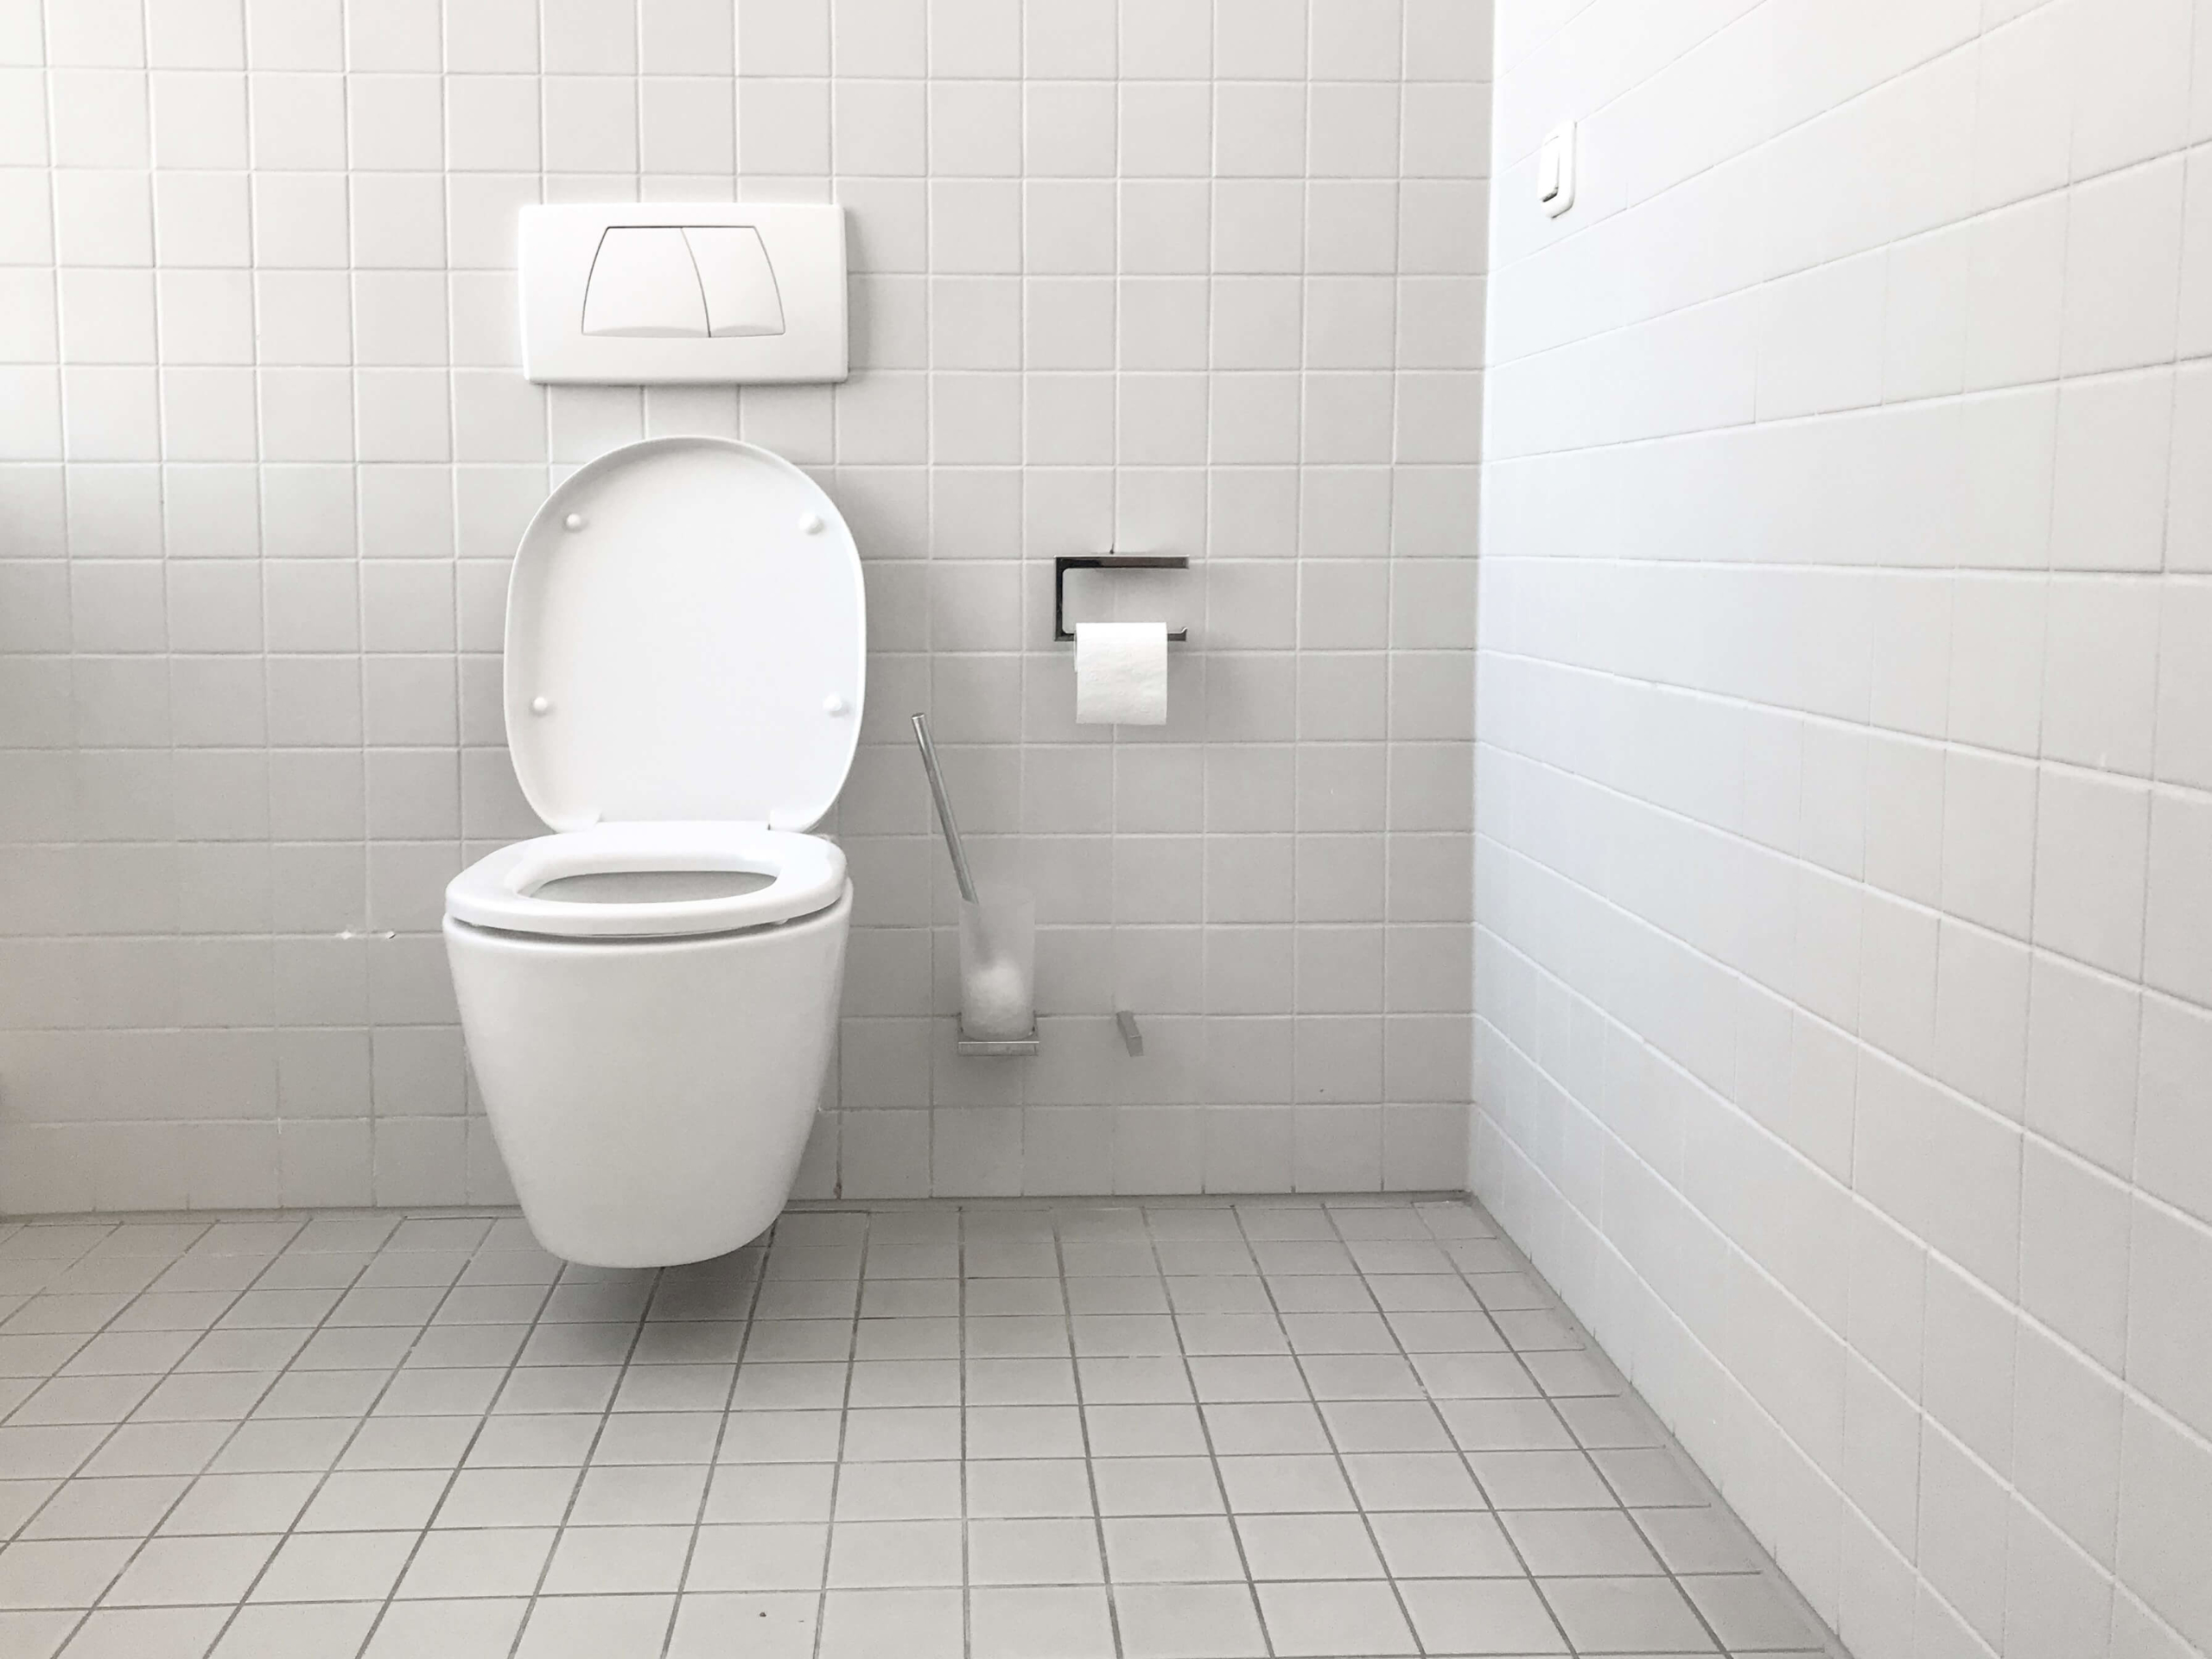 Blocked Sewer Pipes in Public Toilets